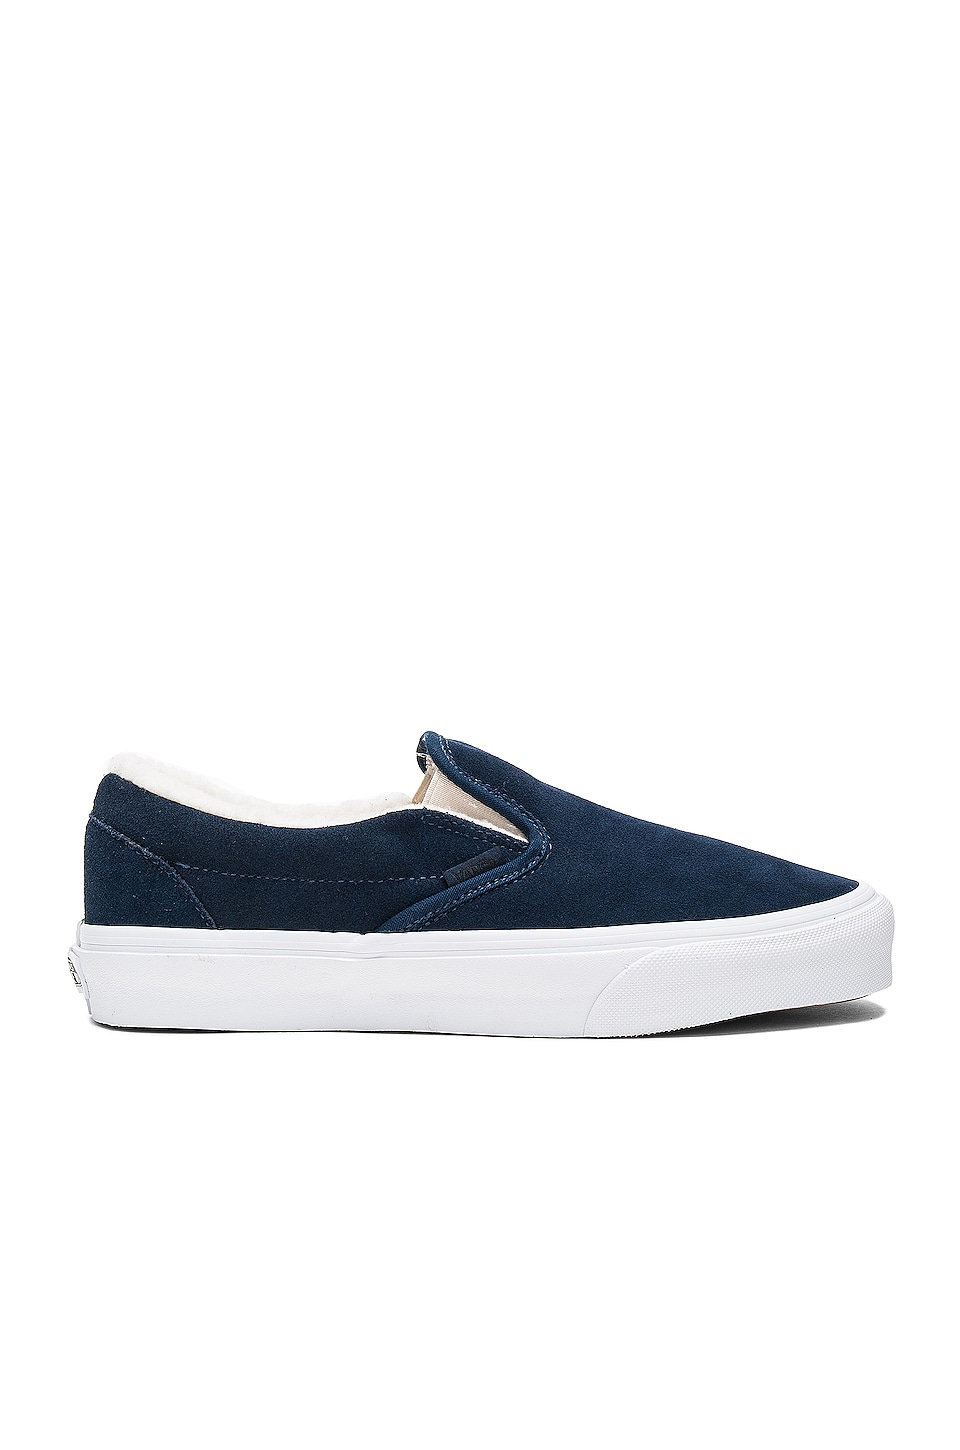 Classic Fleece Lined Slip On by Vans